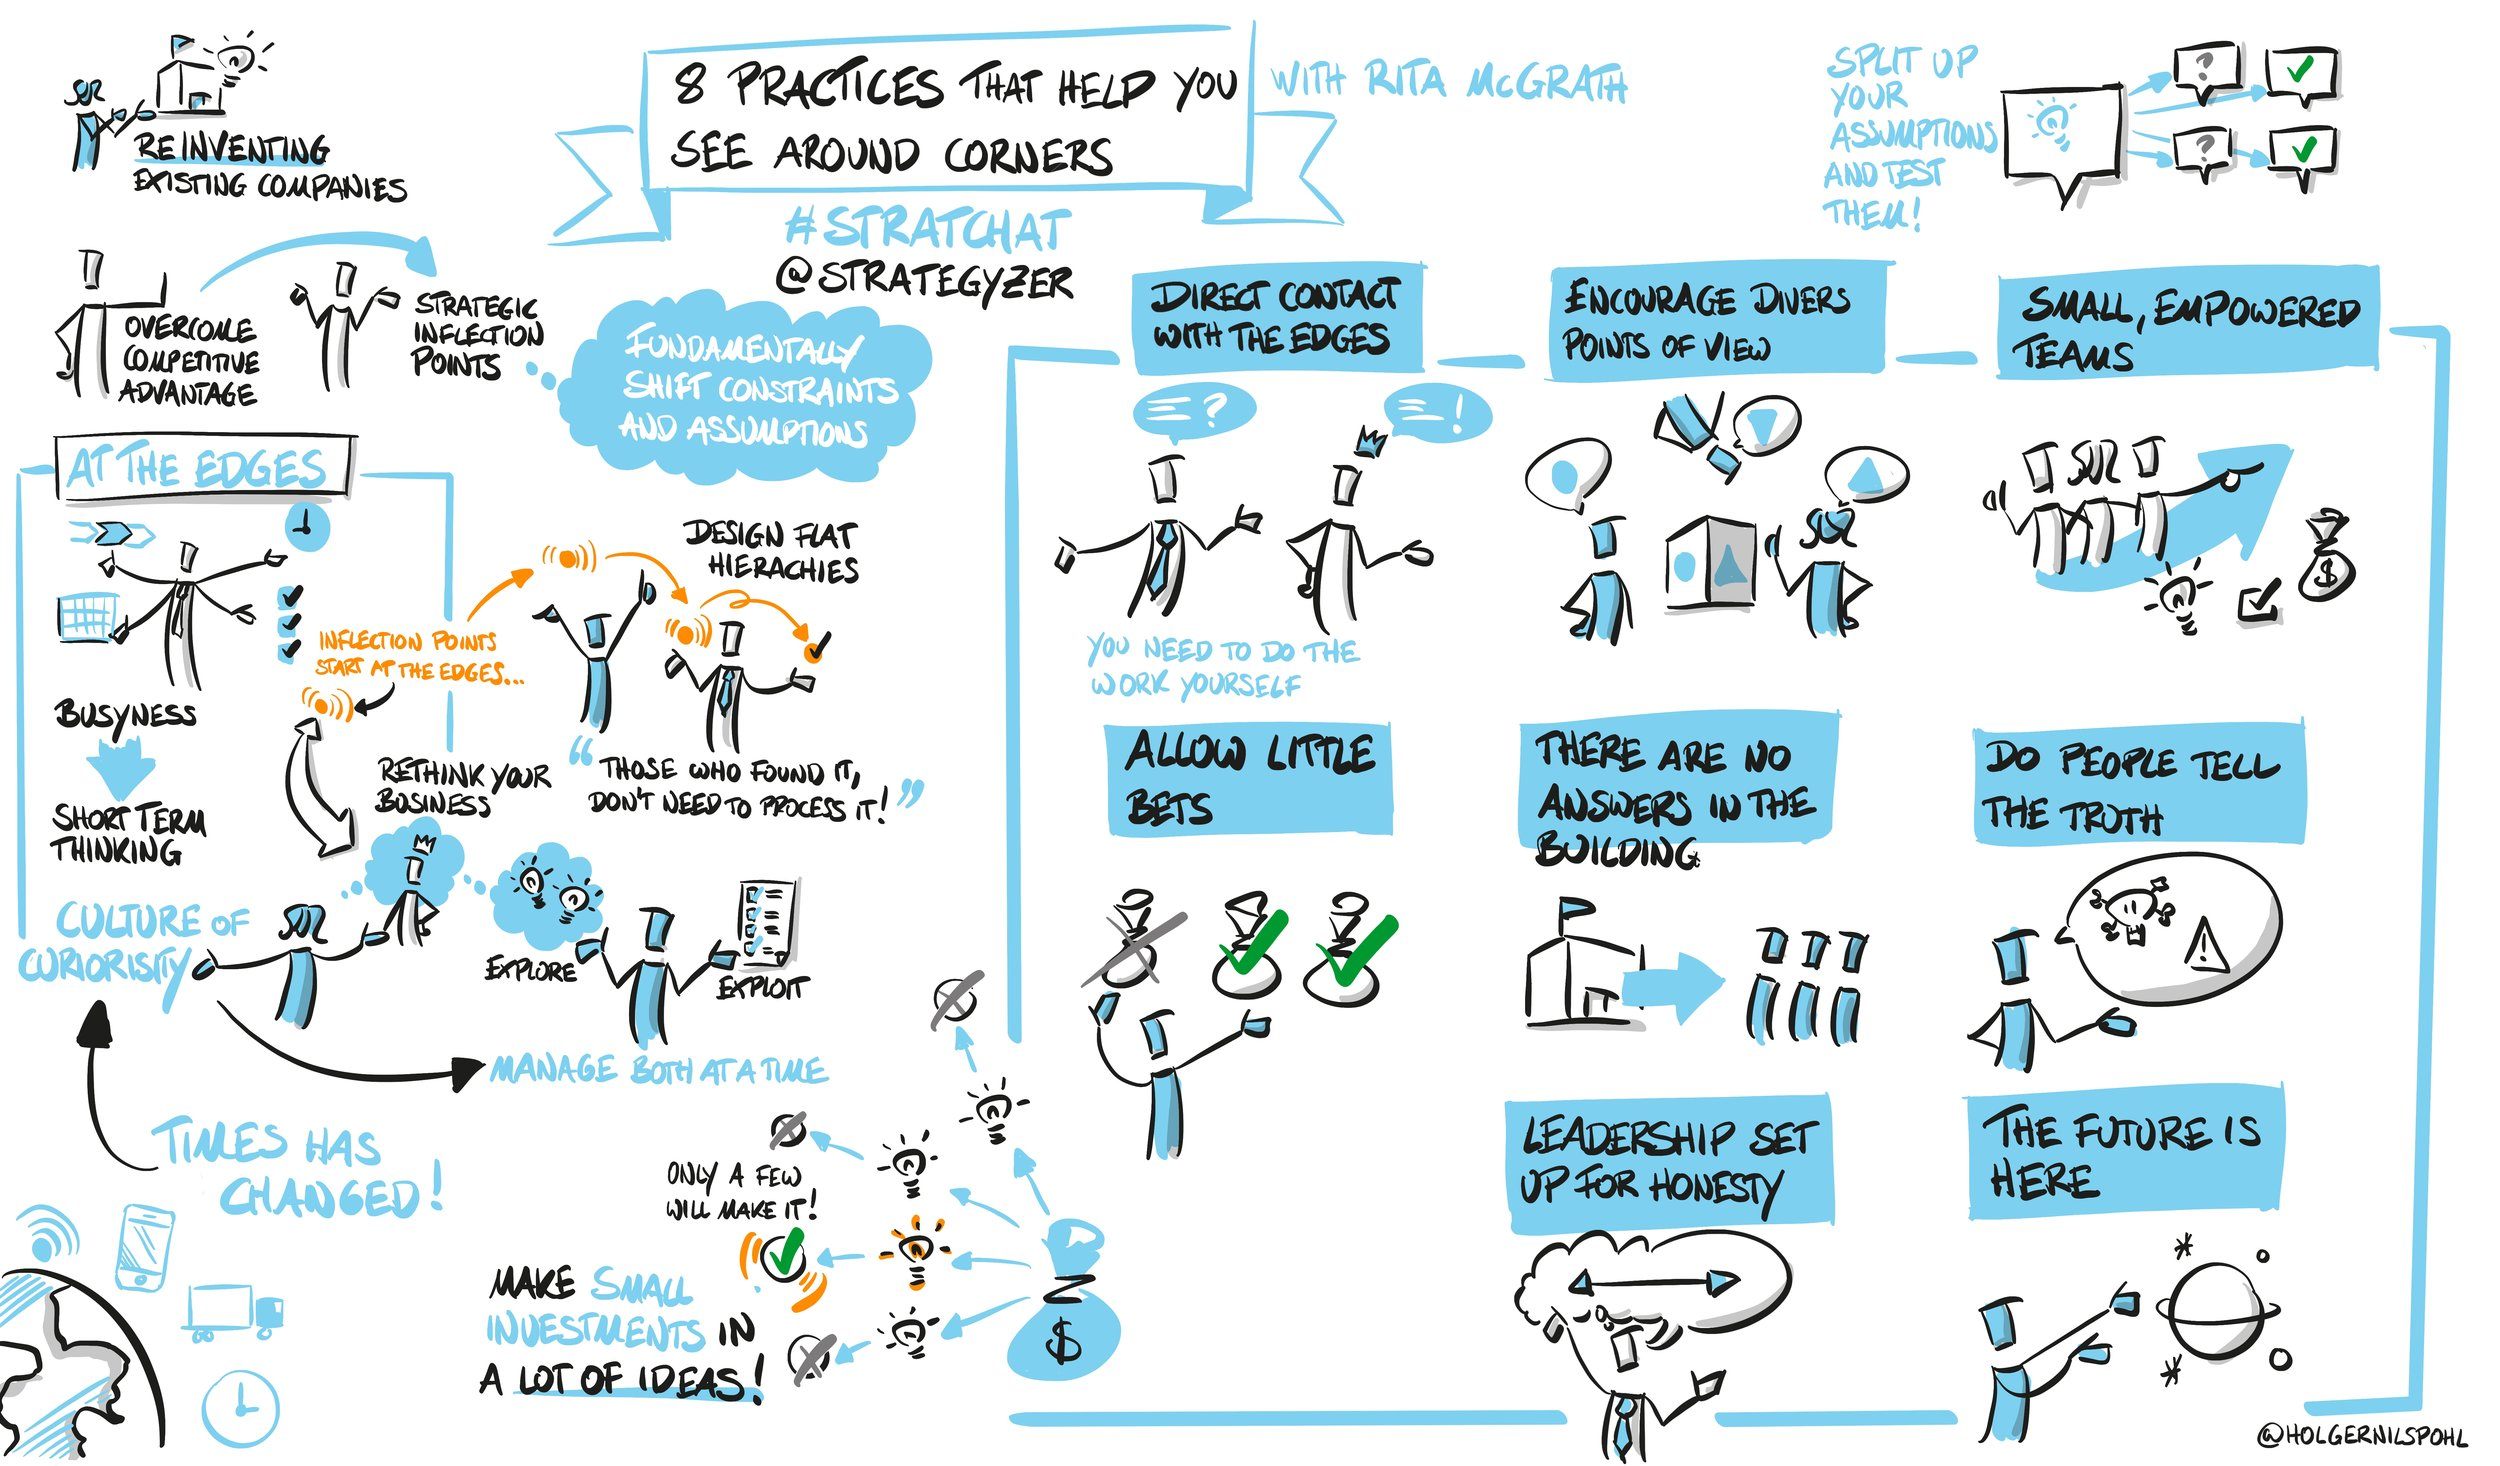 Download Holger's recap drawing of the session  here .